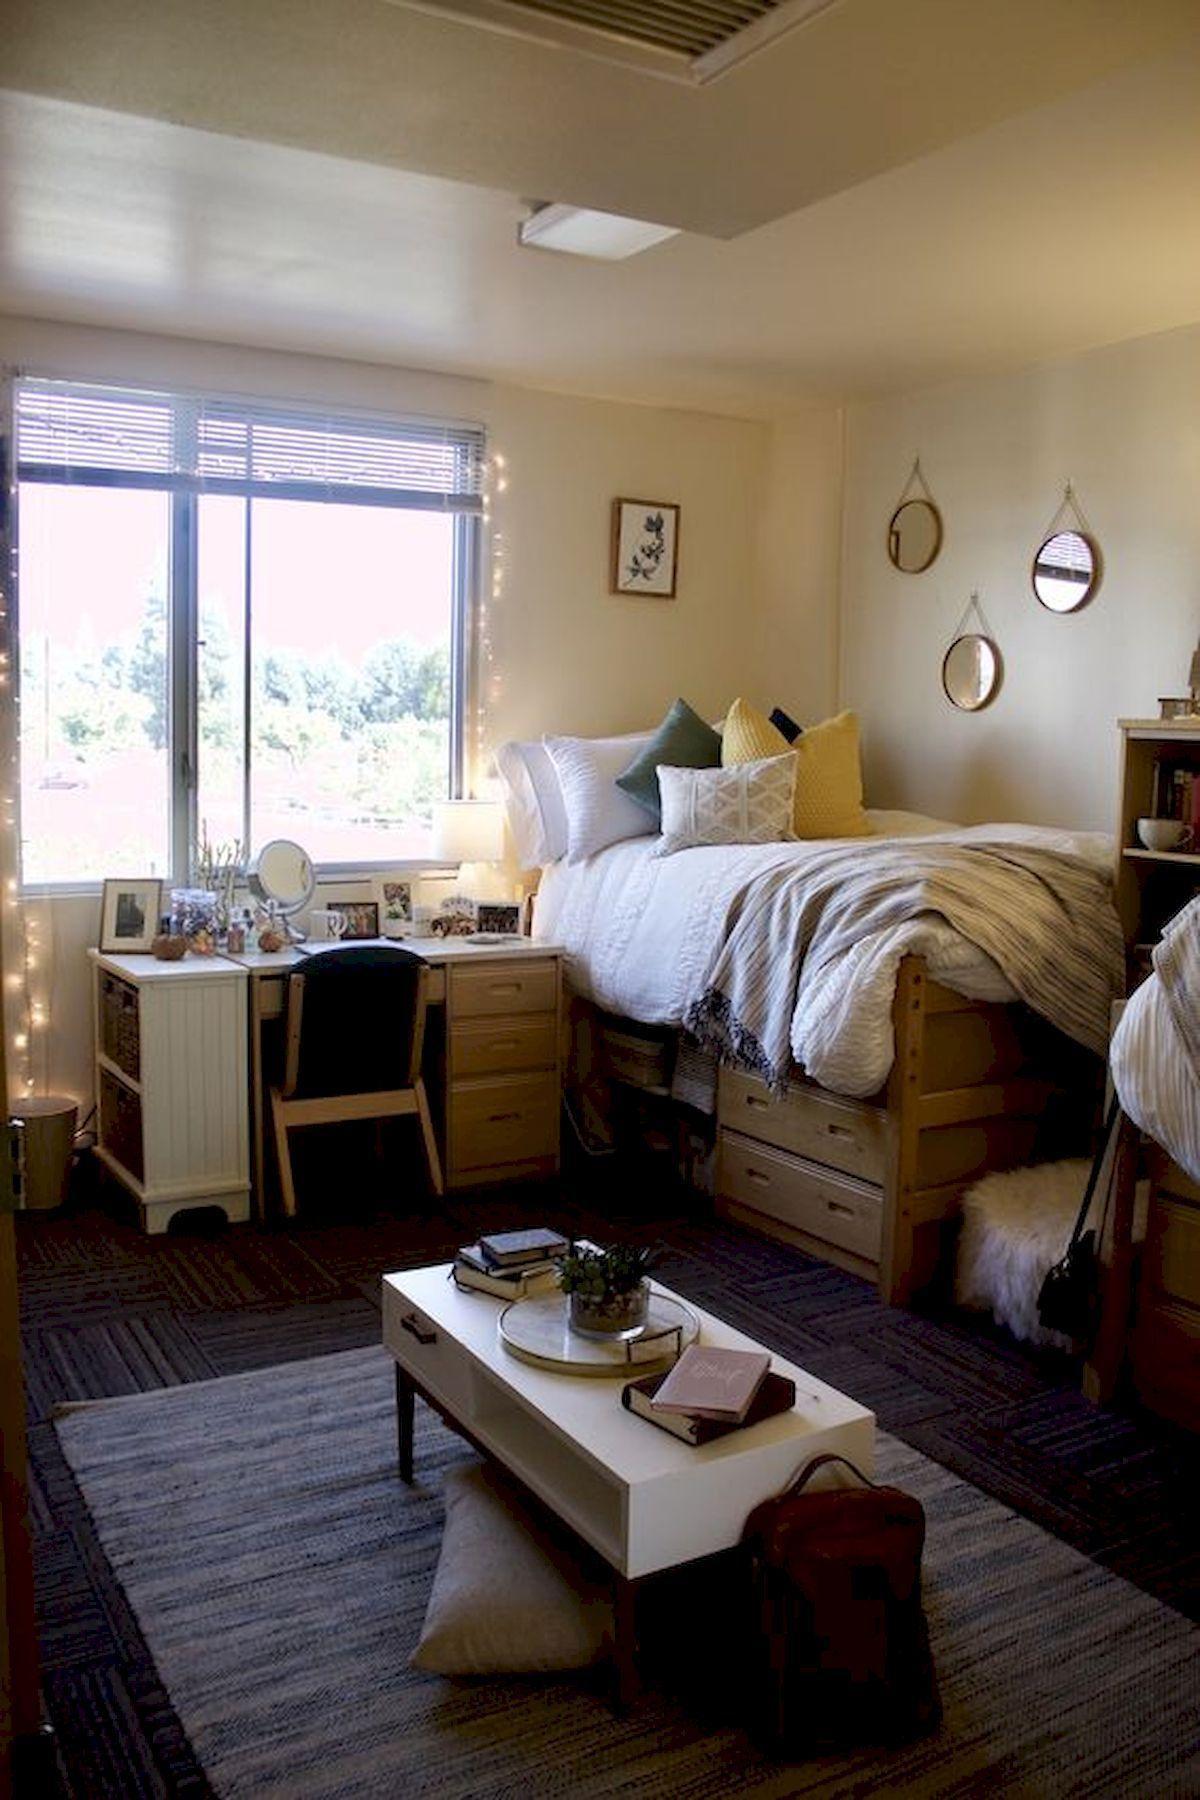 Cool fantastic college bedroom decor ideas and remodel source https worldecor also rh pinterest